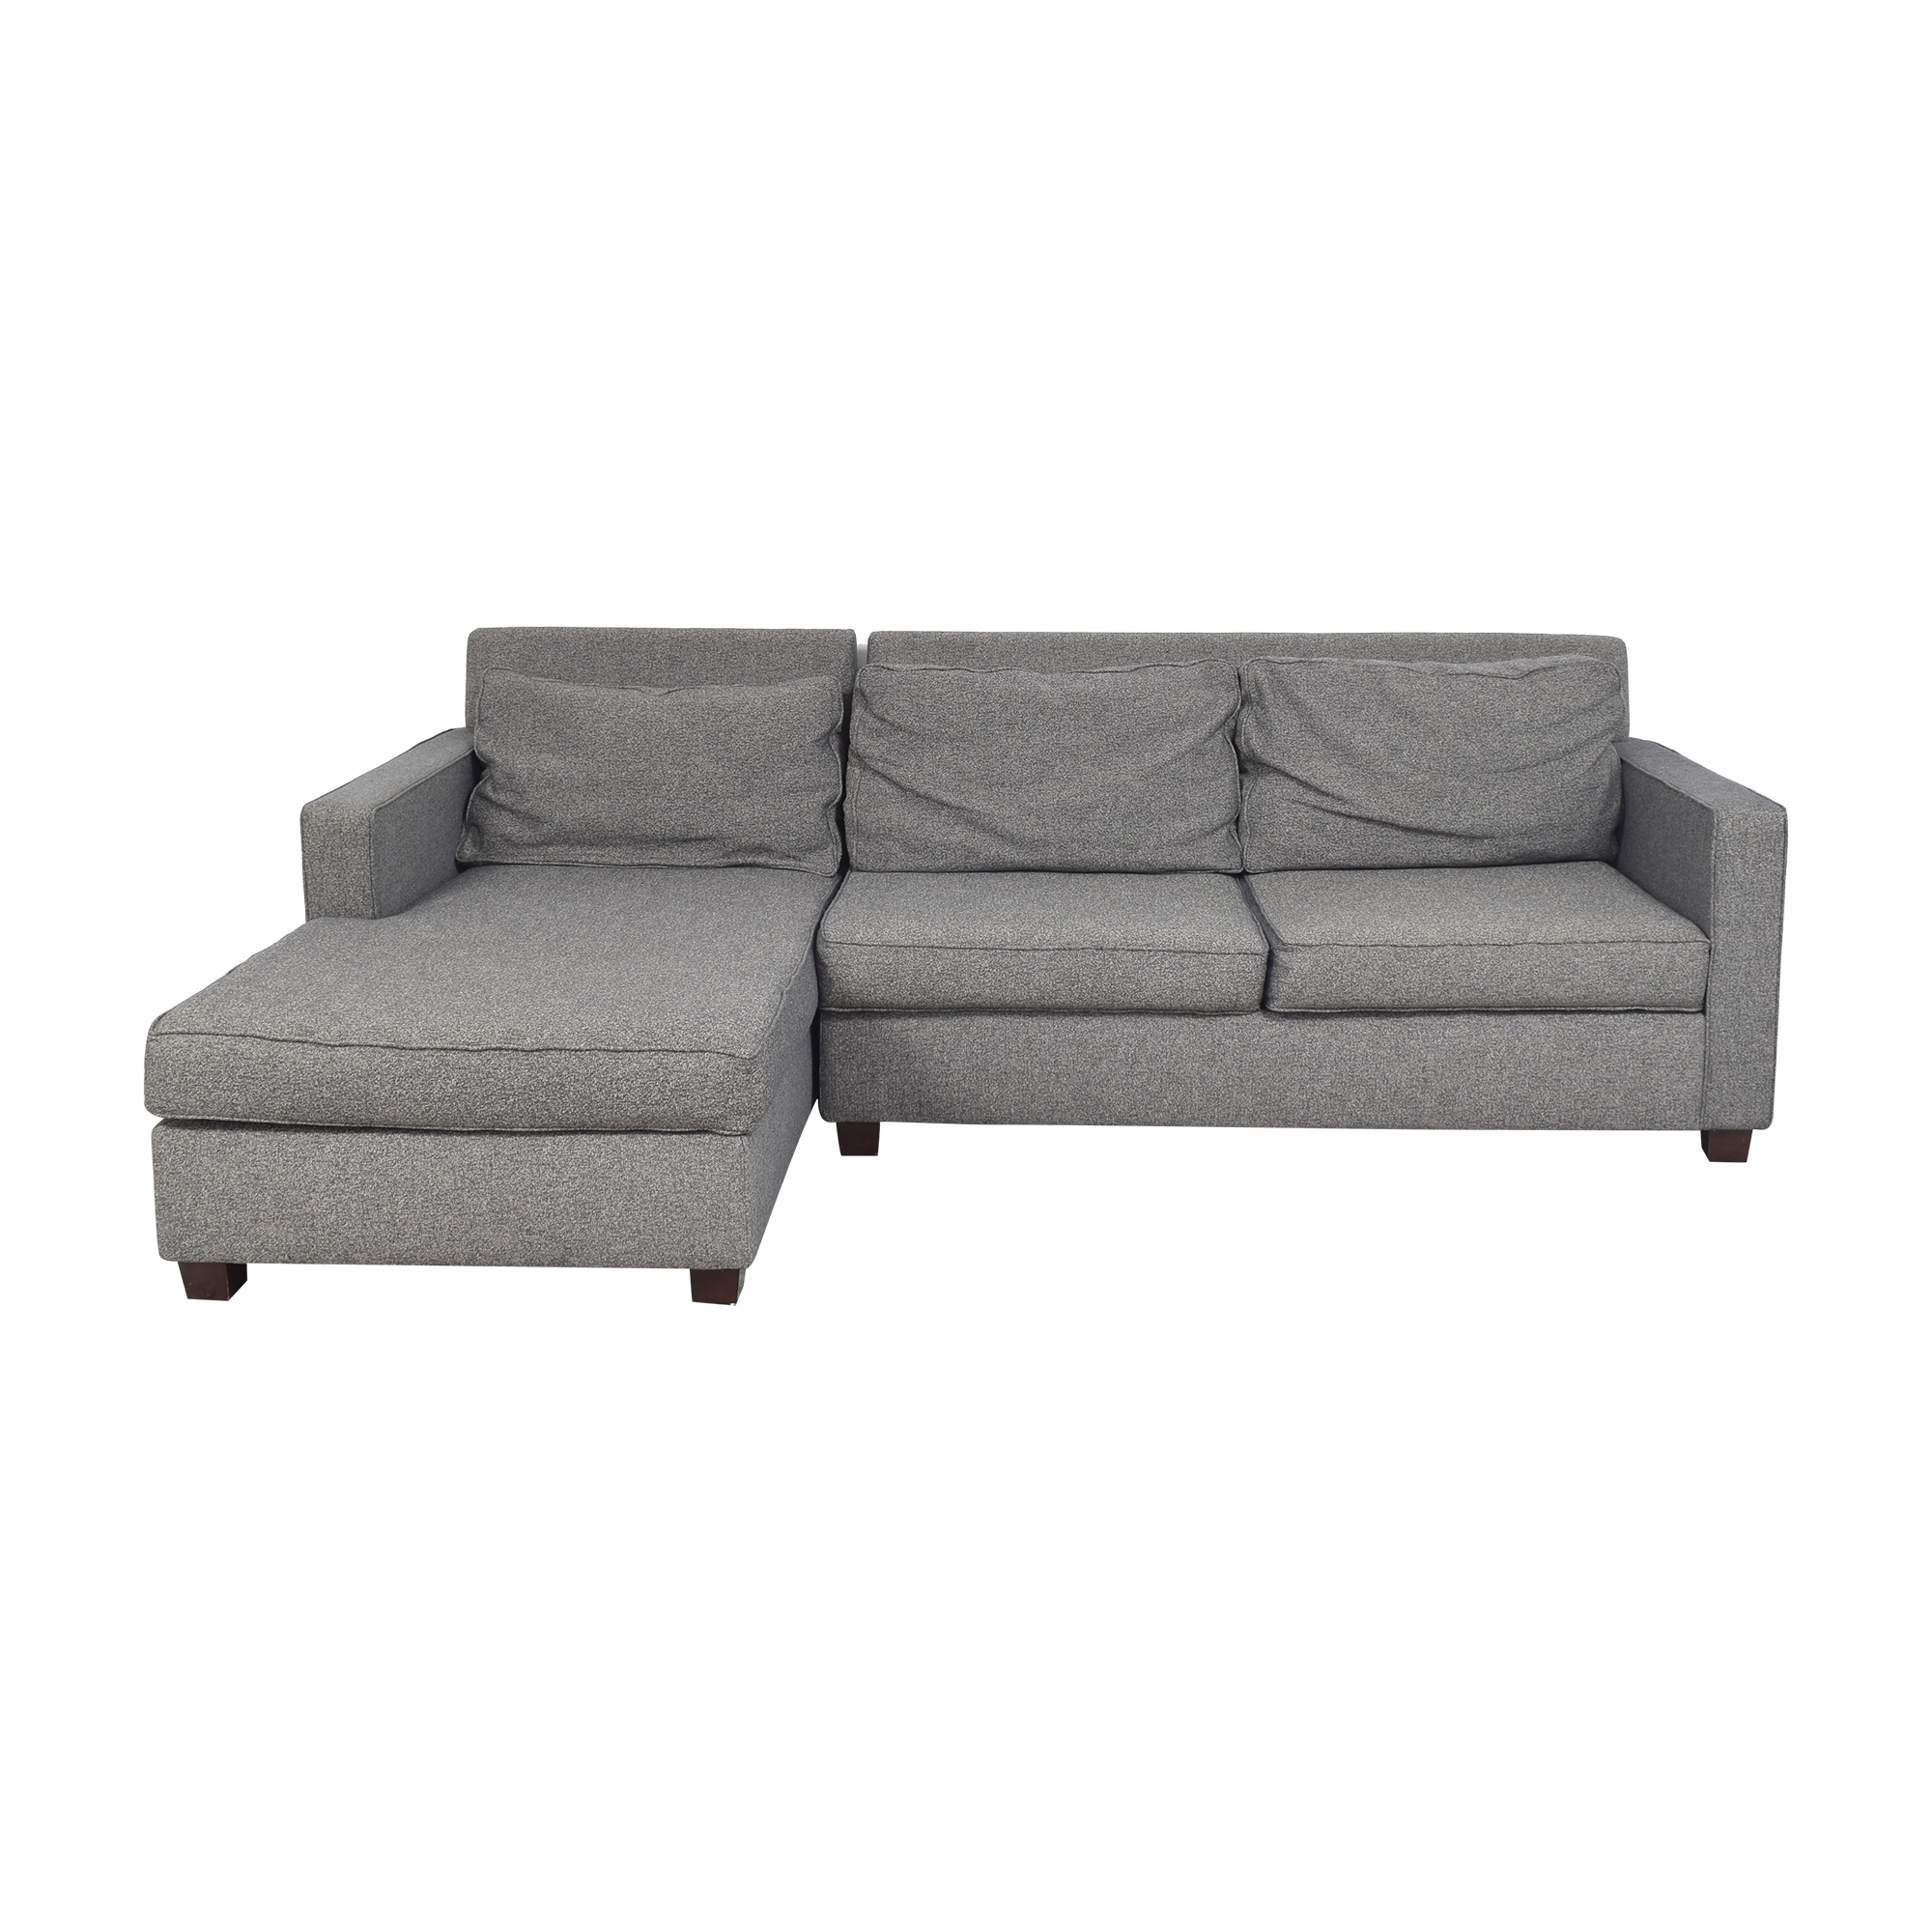 West Elm West Elm Henry Chaise Sectional Sofa nyc